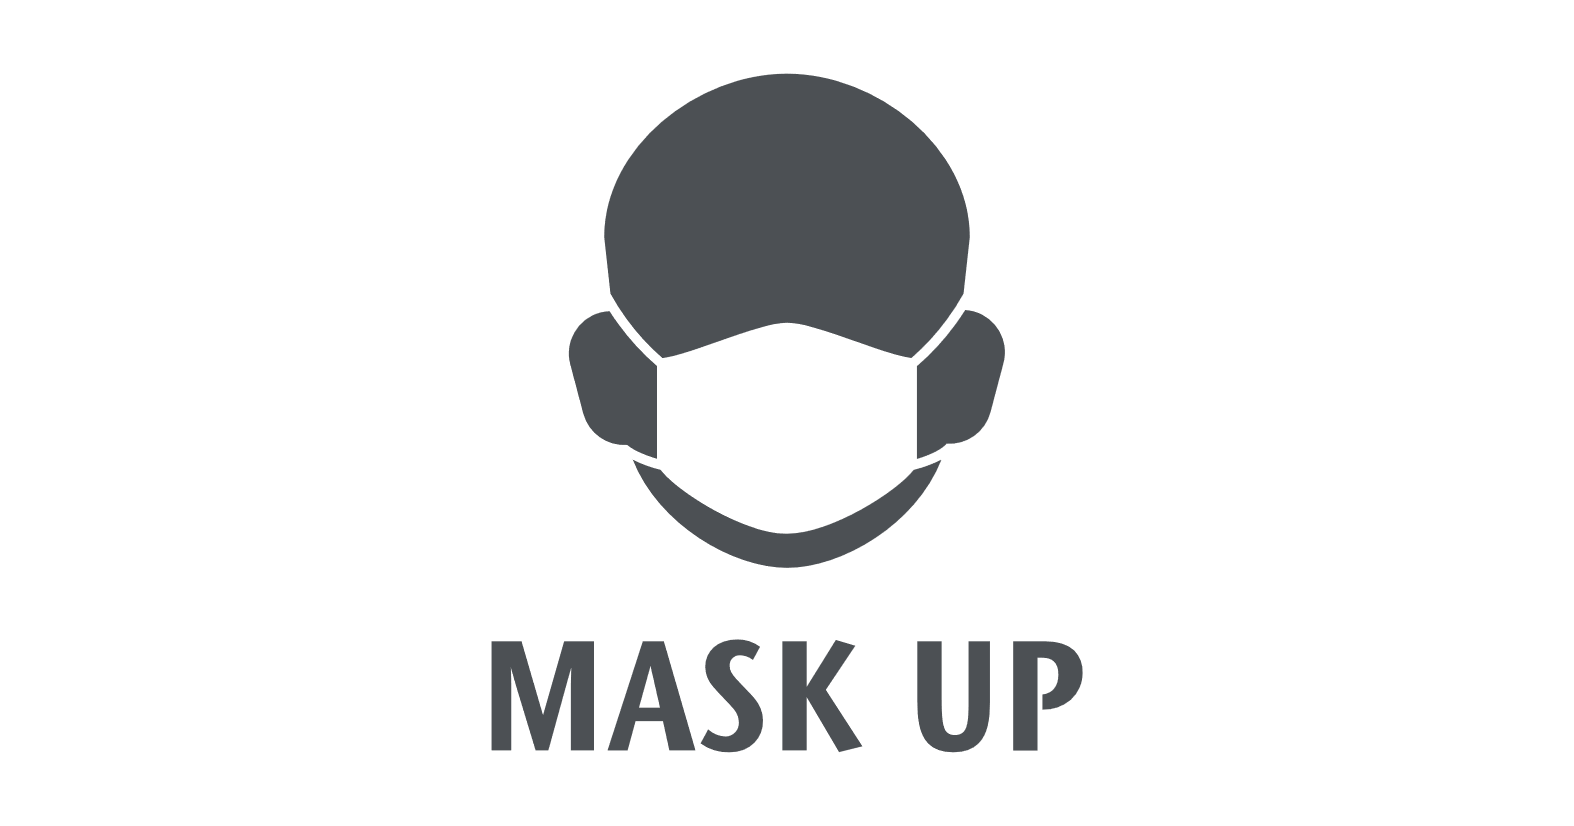 Icon showing person wearing mask